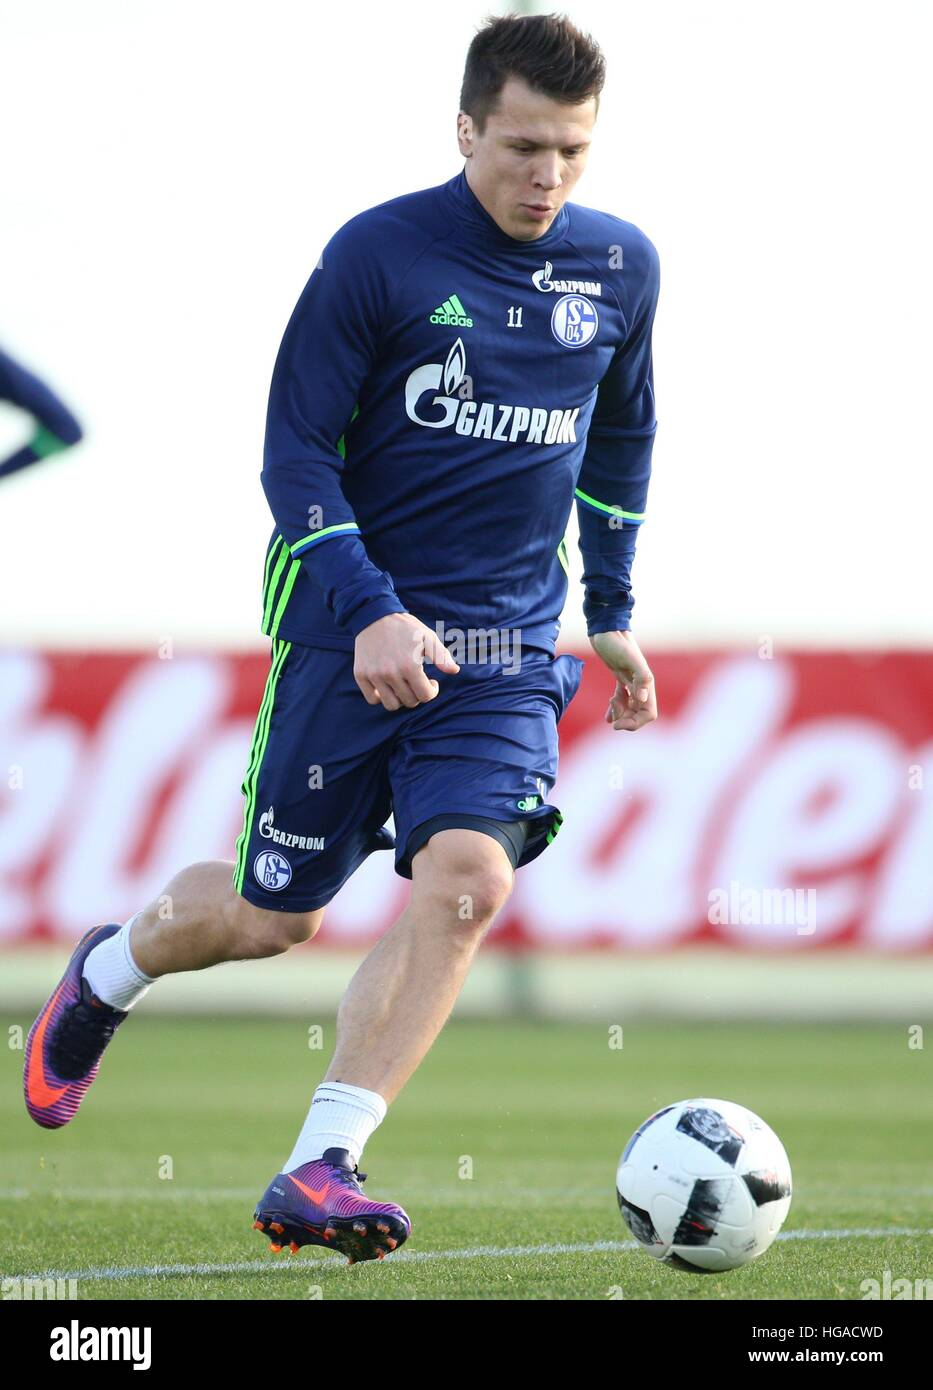 Schalke s Yevhen Konoplyanka runs with the ball during a training